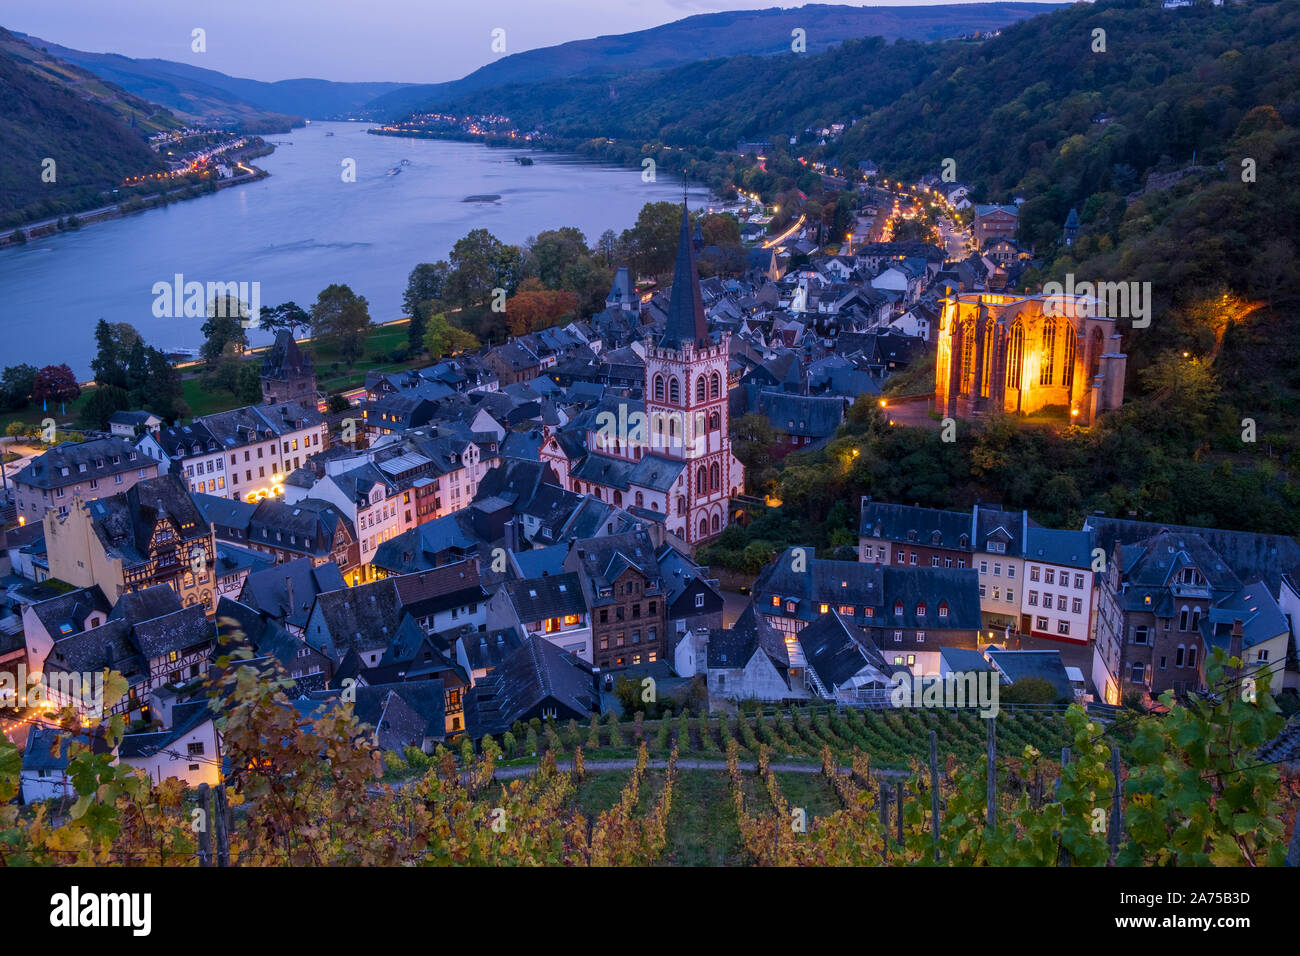 Rhine valley at Bacharach, Germany Stock Photo